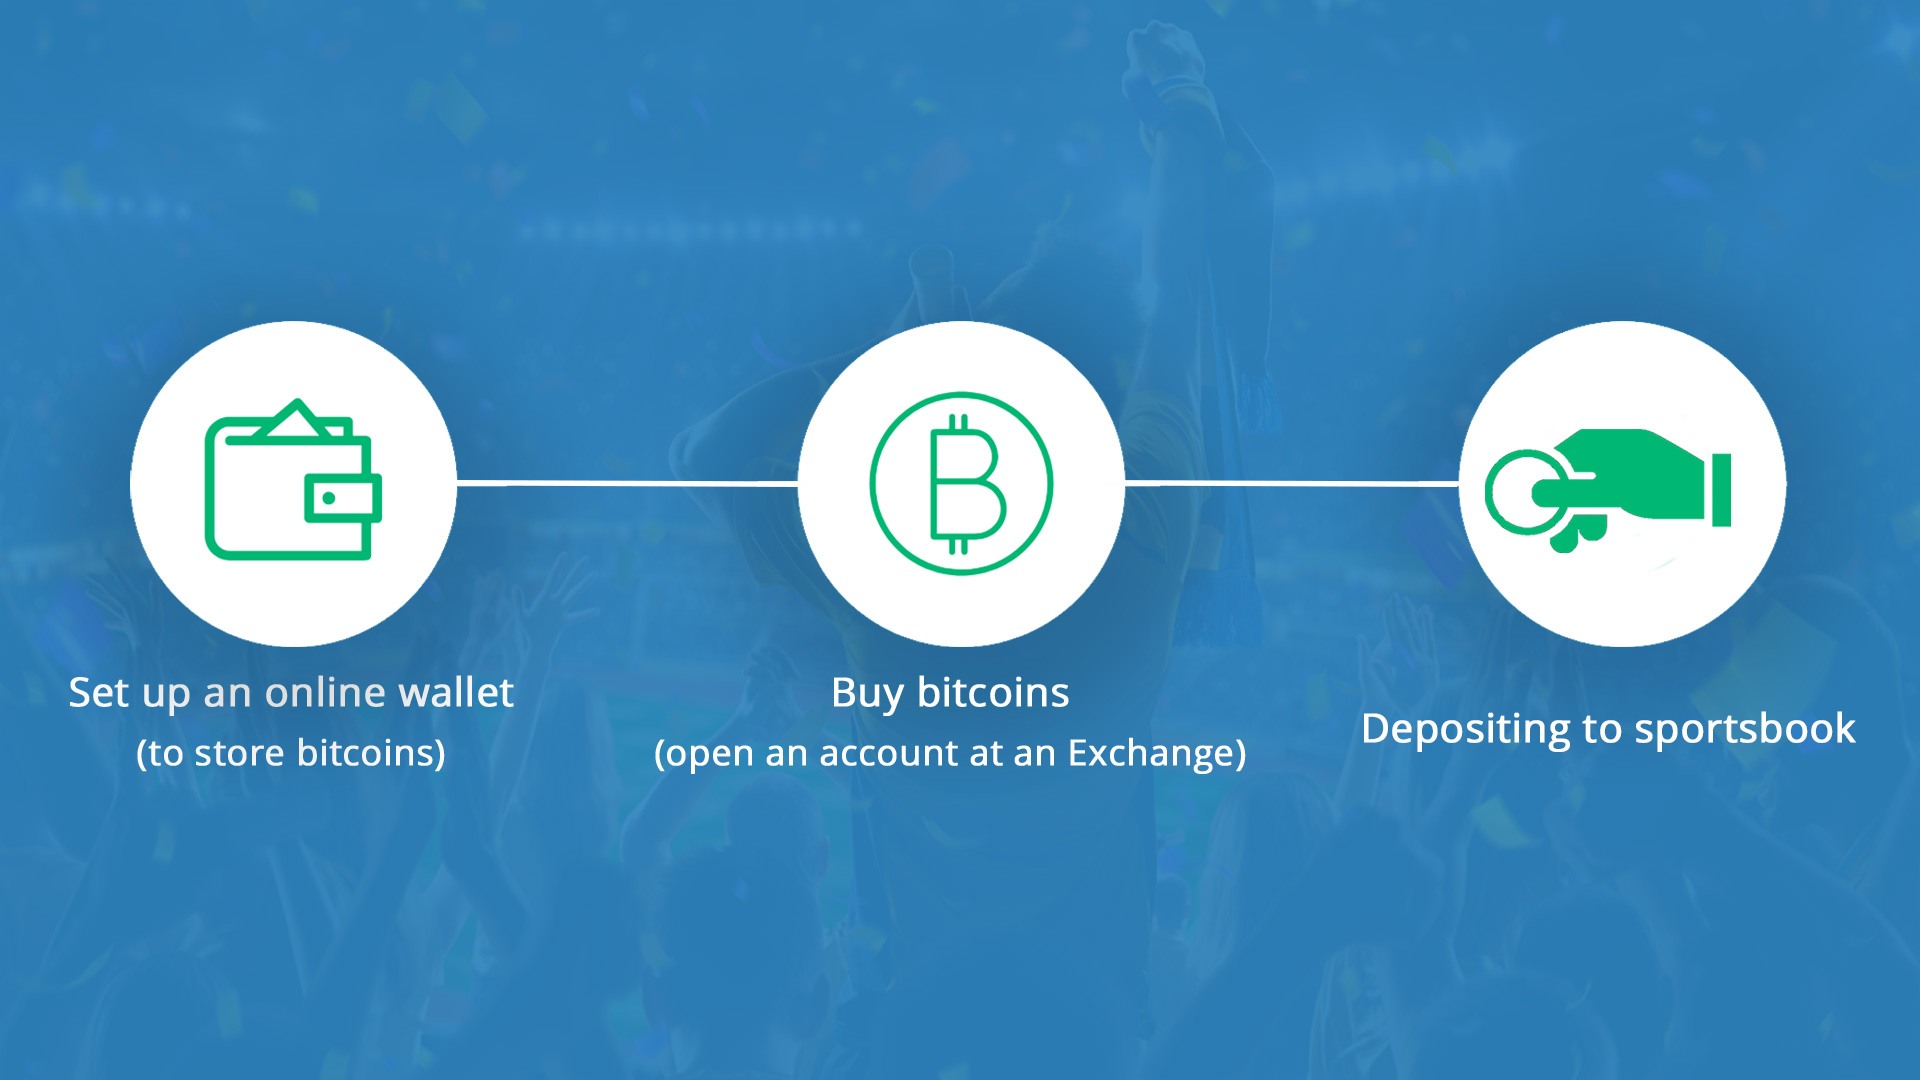 How to Deposit with Cryptocurrency?